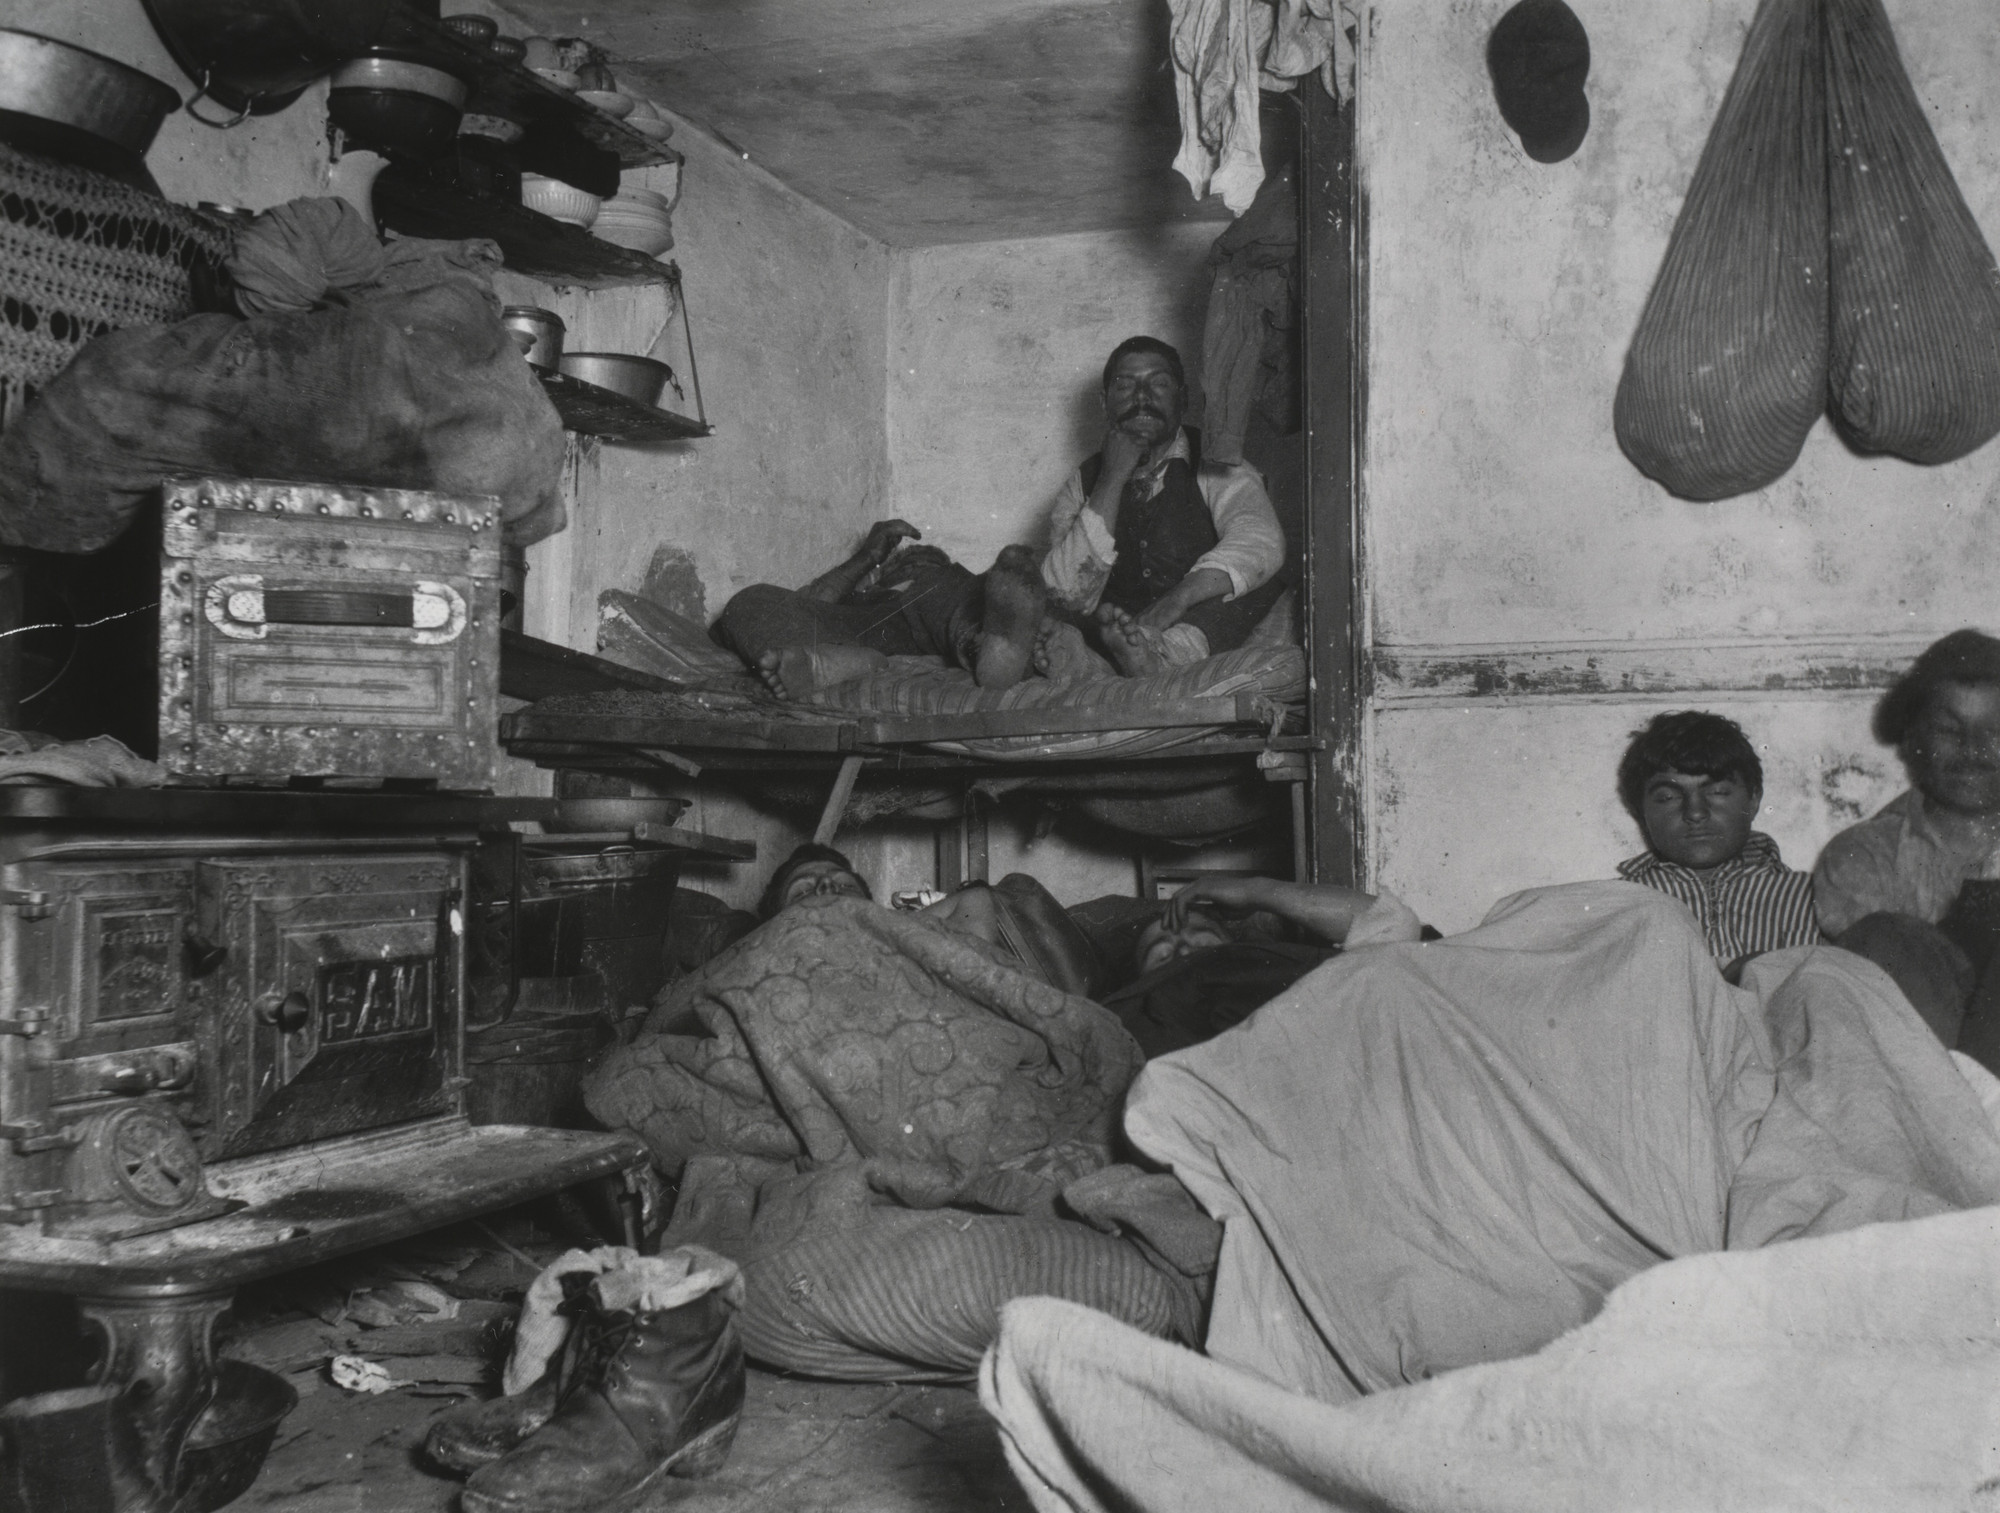 Jacob August Riis. Lodgers in Bayard Street Tenement, Five Cents a Spot. 1889